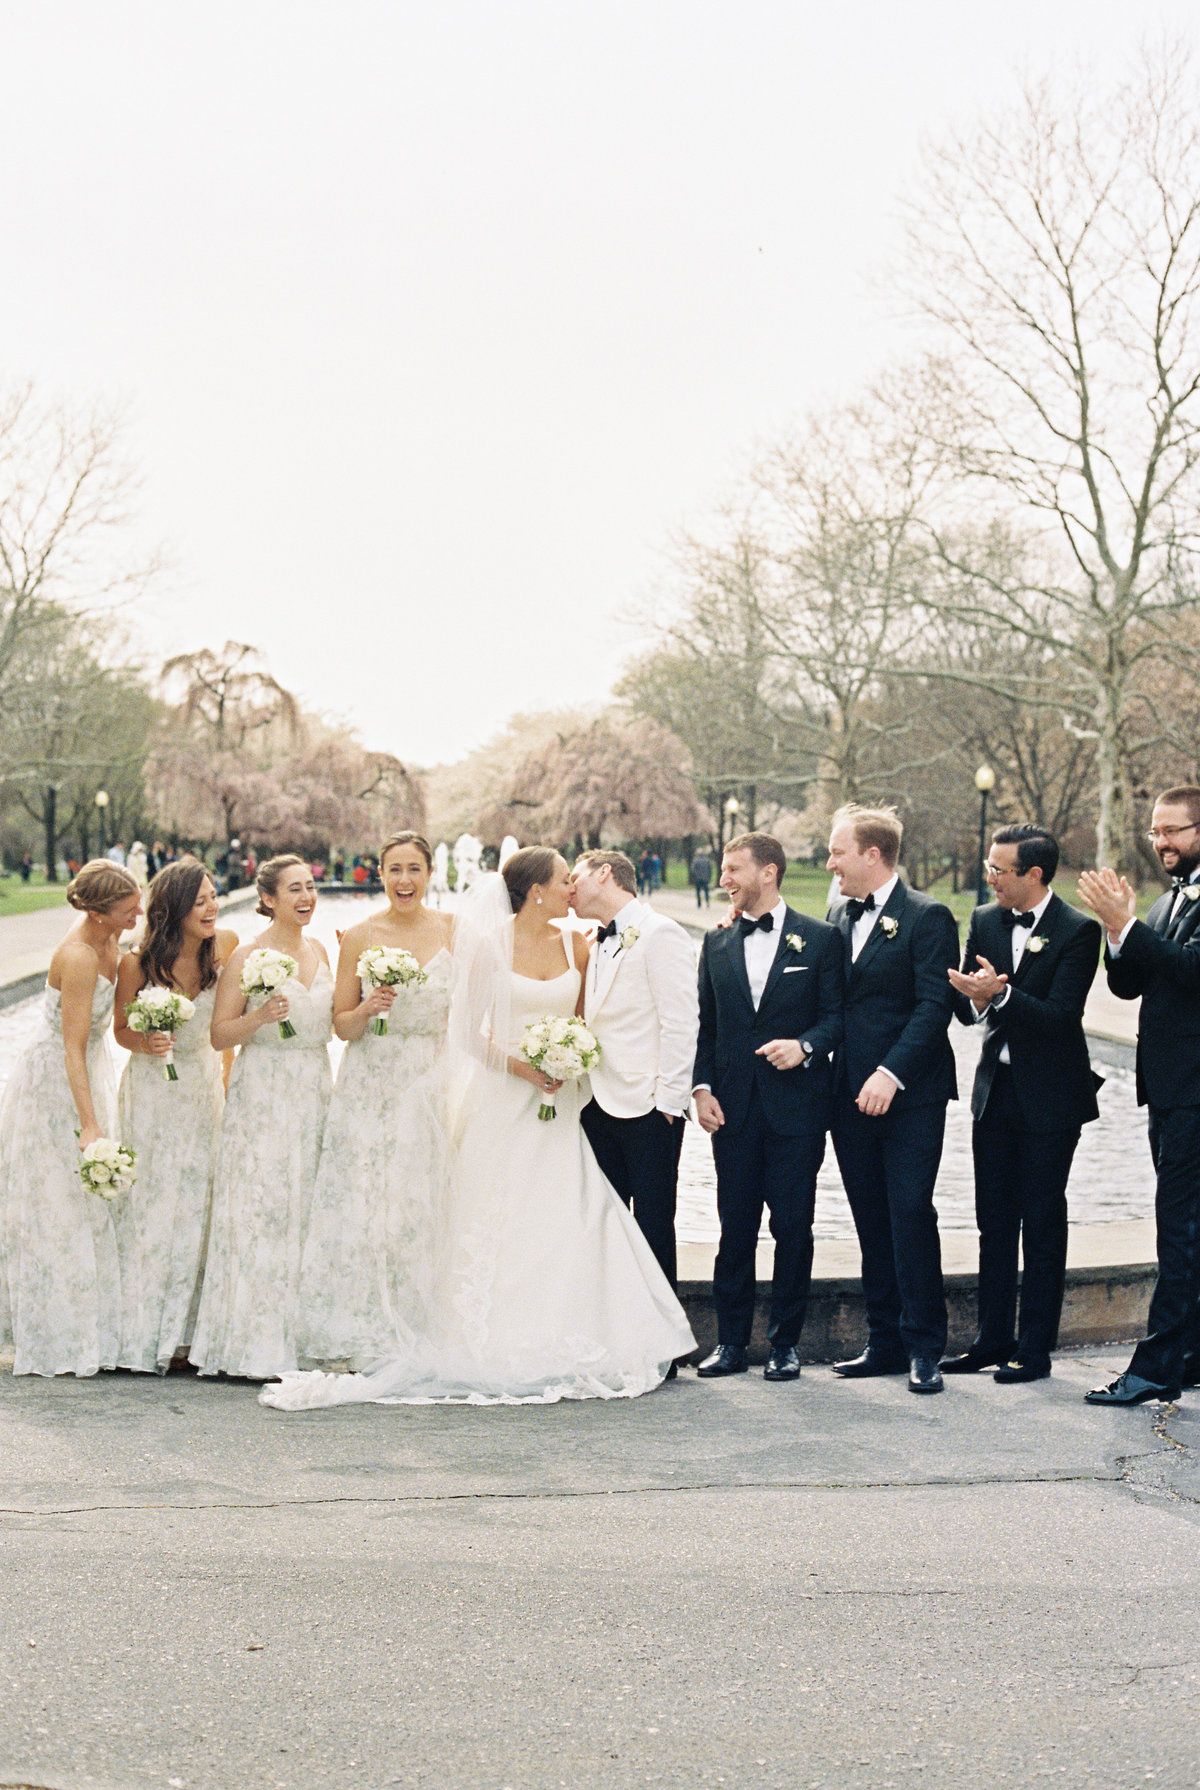 Pastel spring wedding ceremony and reception at Centennial Arboretum and Horticultural Center in Philadelphia.